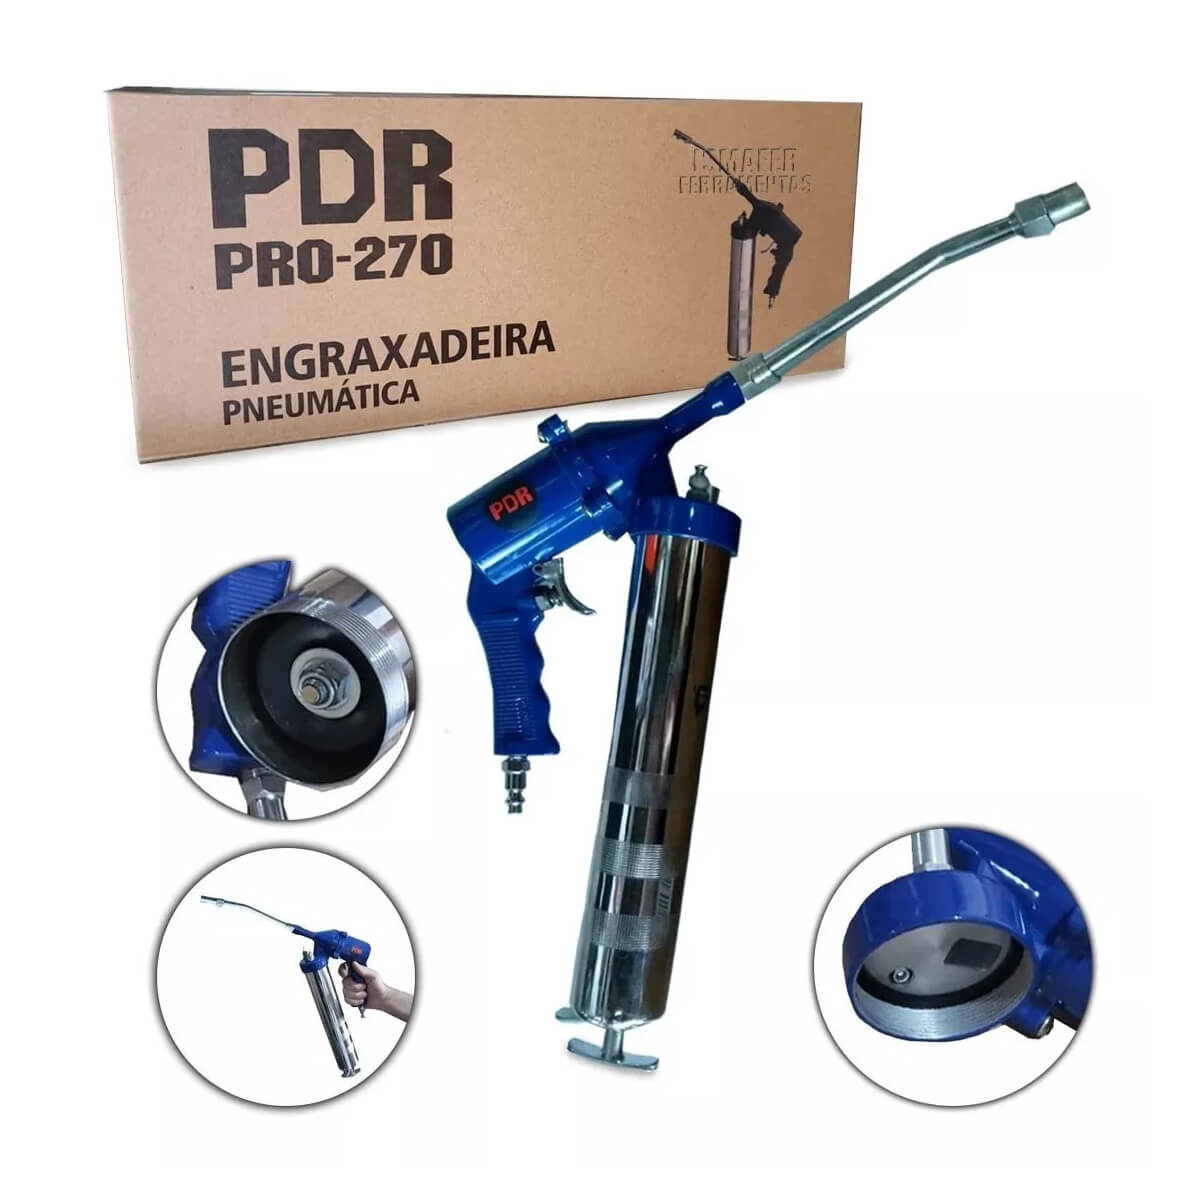 ENGRAXADEIRA PRO-270 PDR PRO